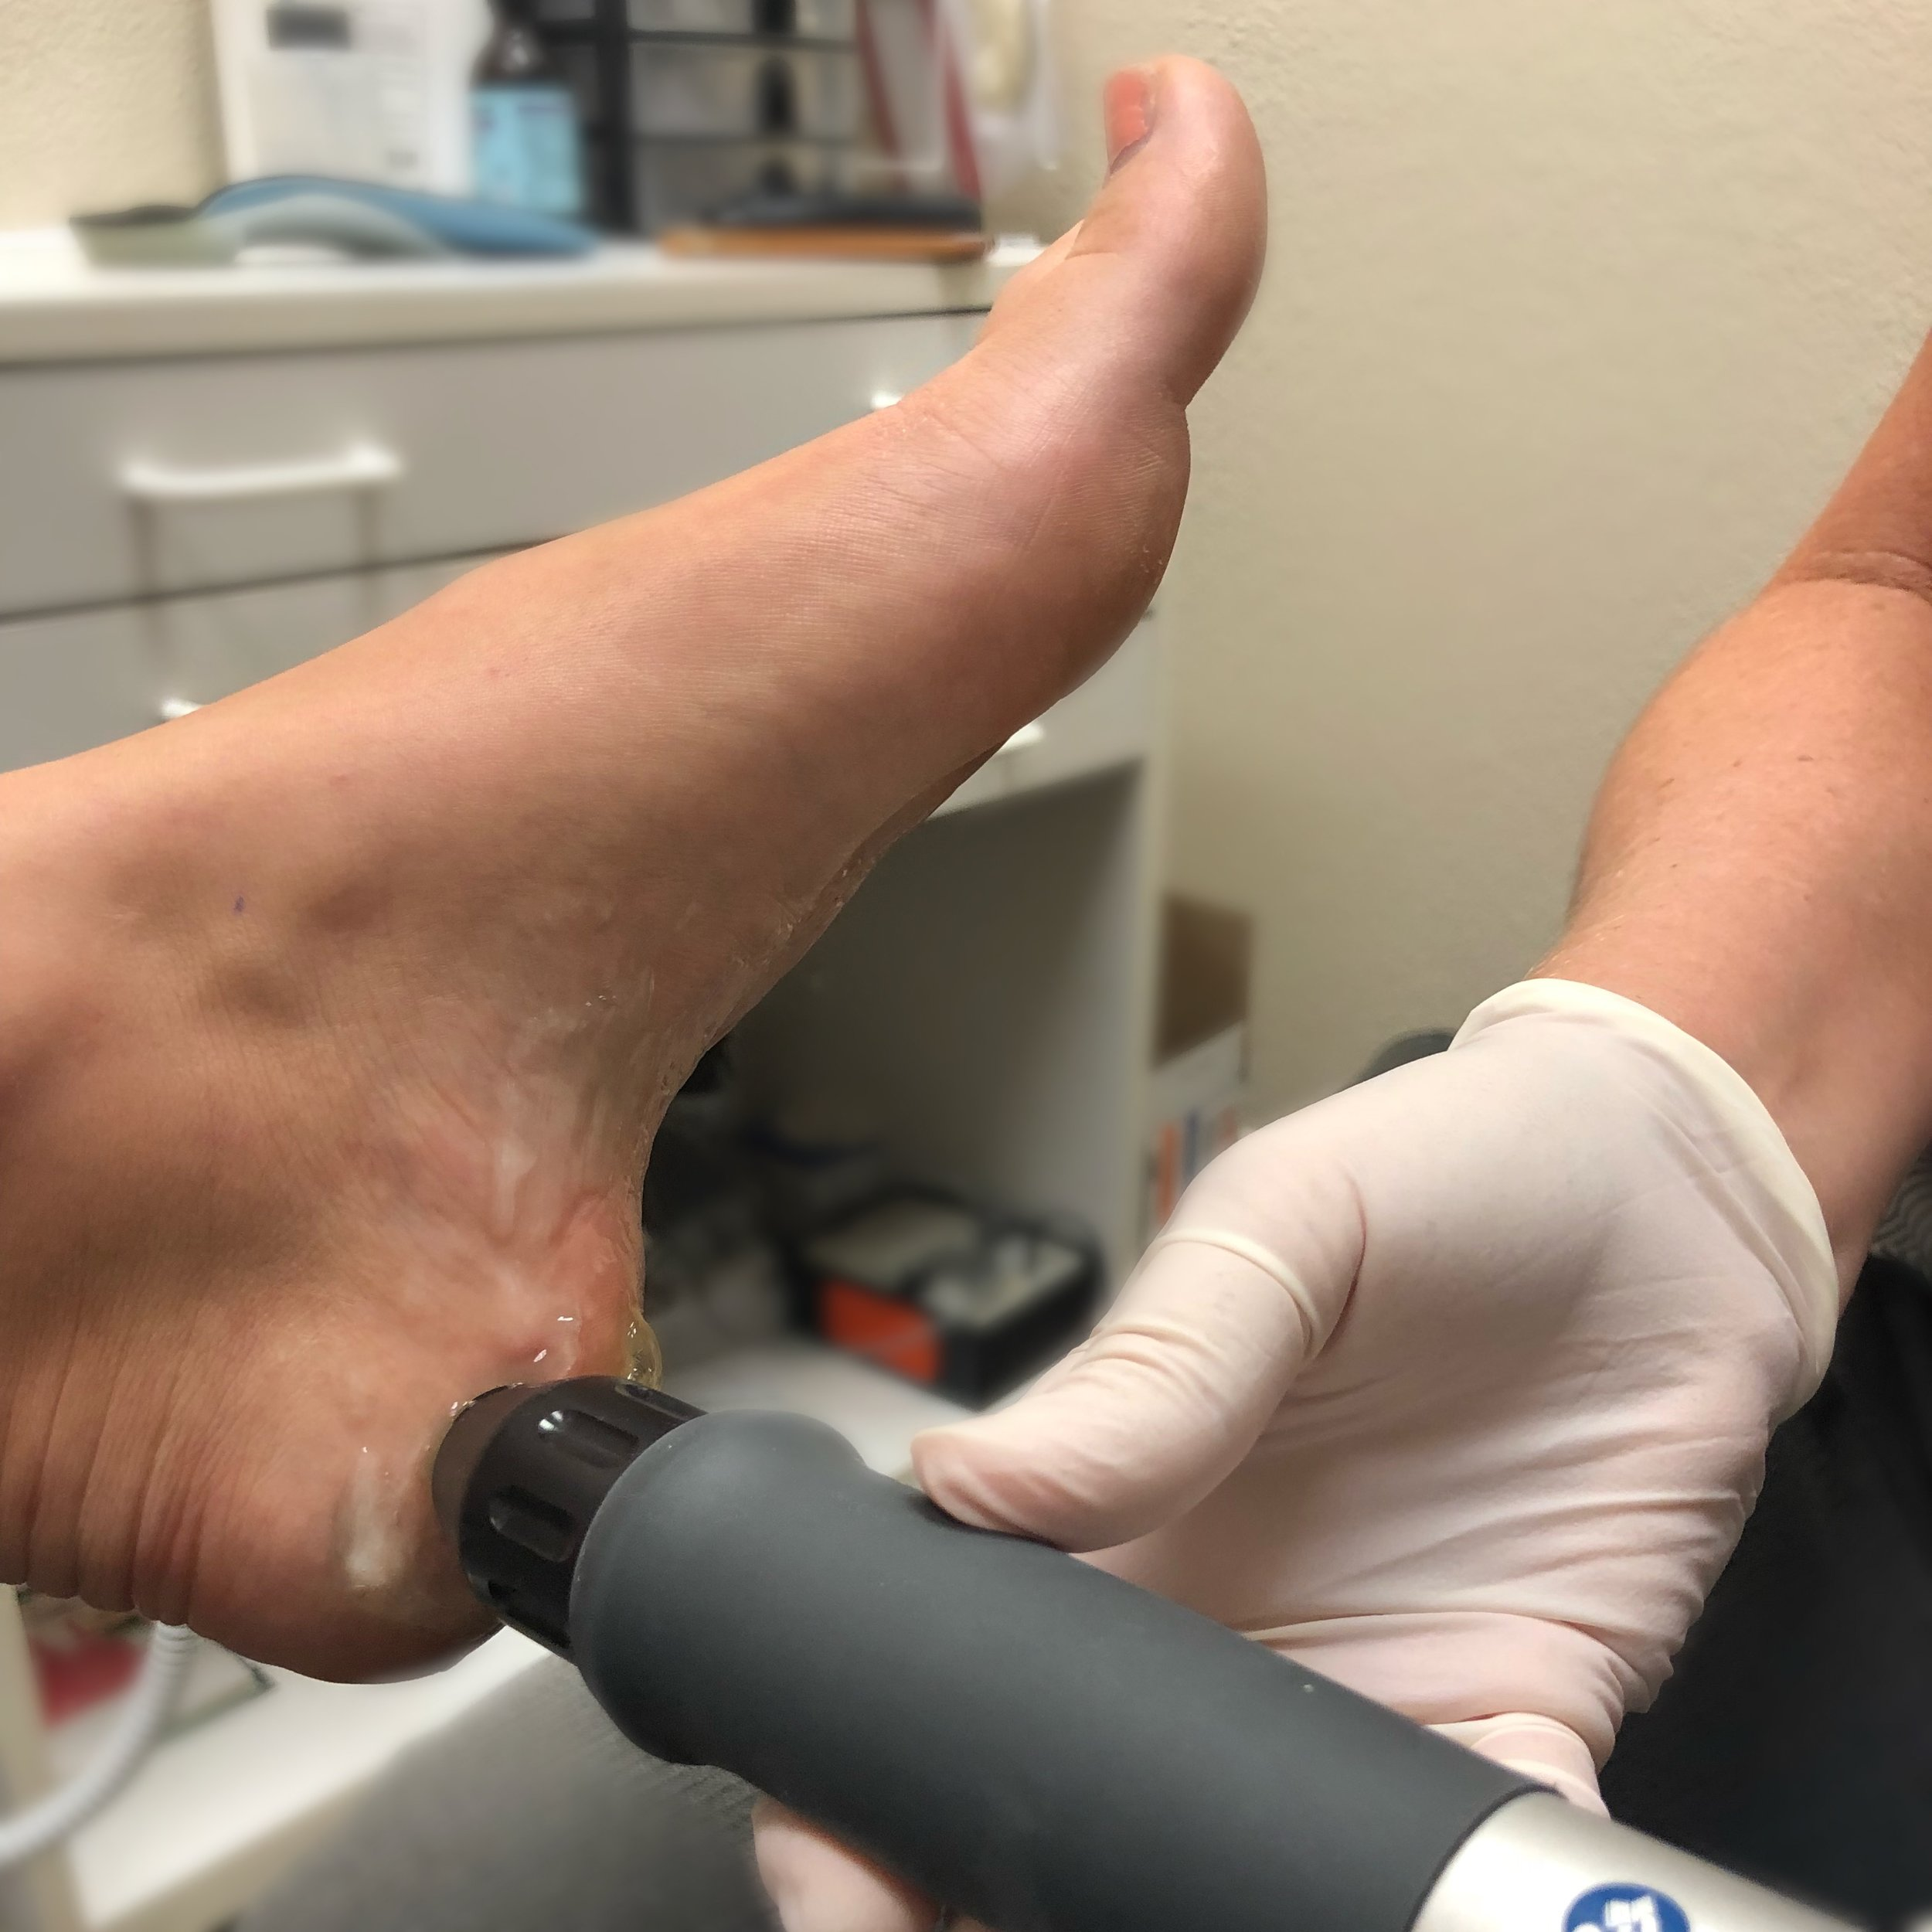 EPAT Treatments - This exciting new technology is a non- invasive and FDA approved treatment for pain, plantar fasciitis, heel pain, bone spurs, and even more.